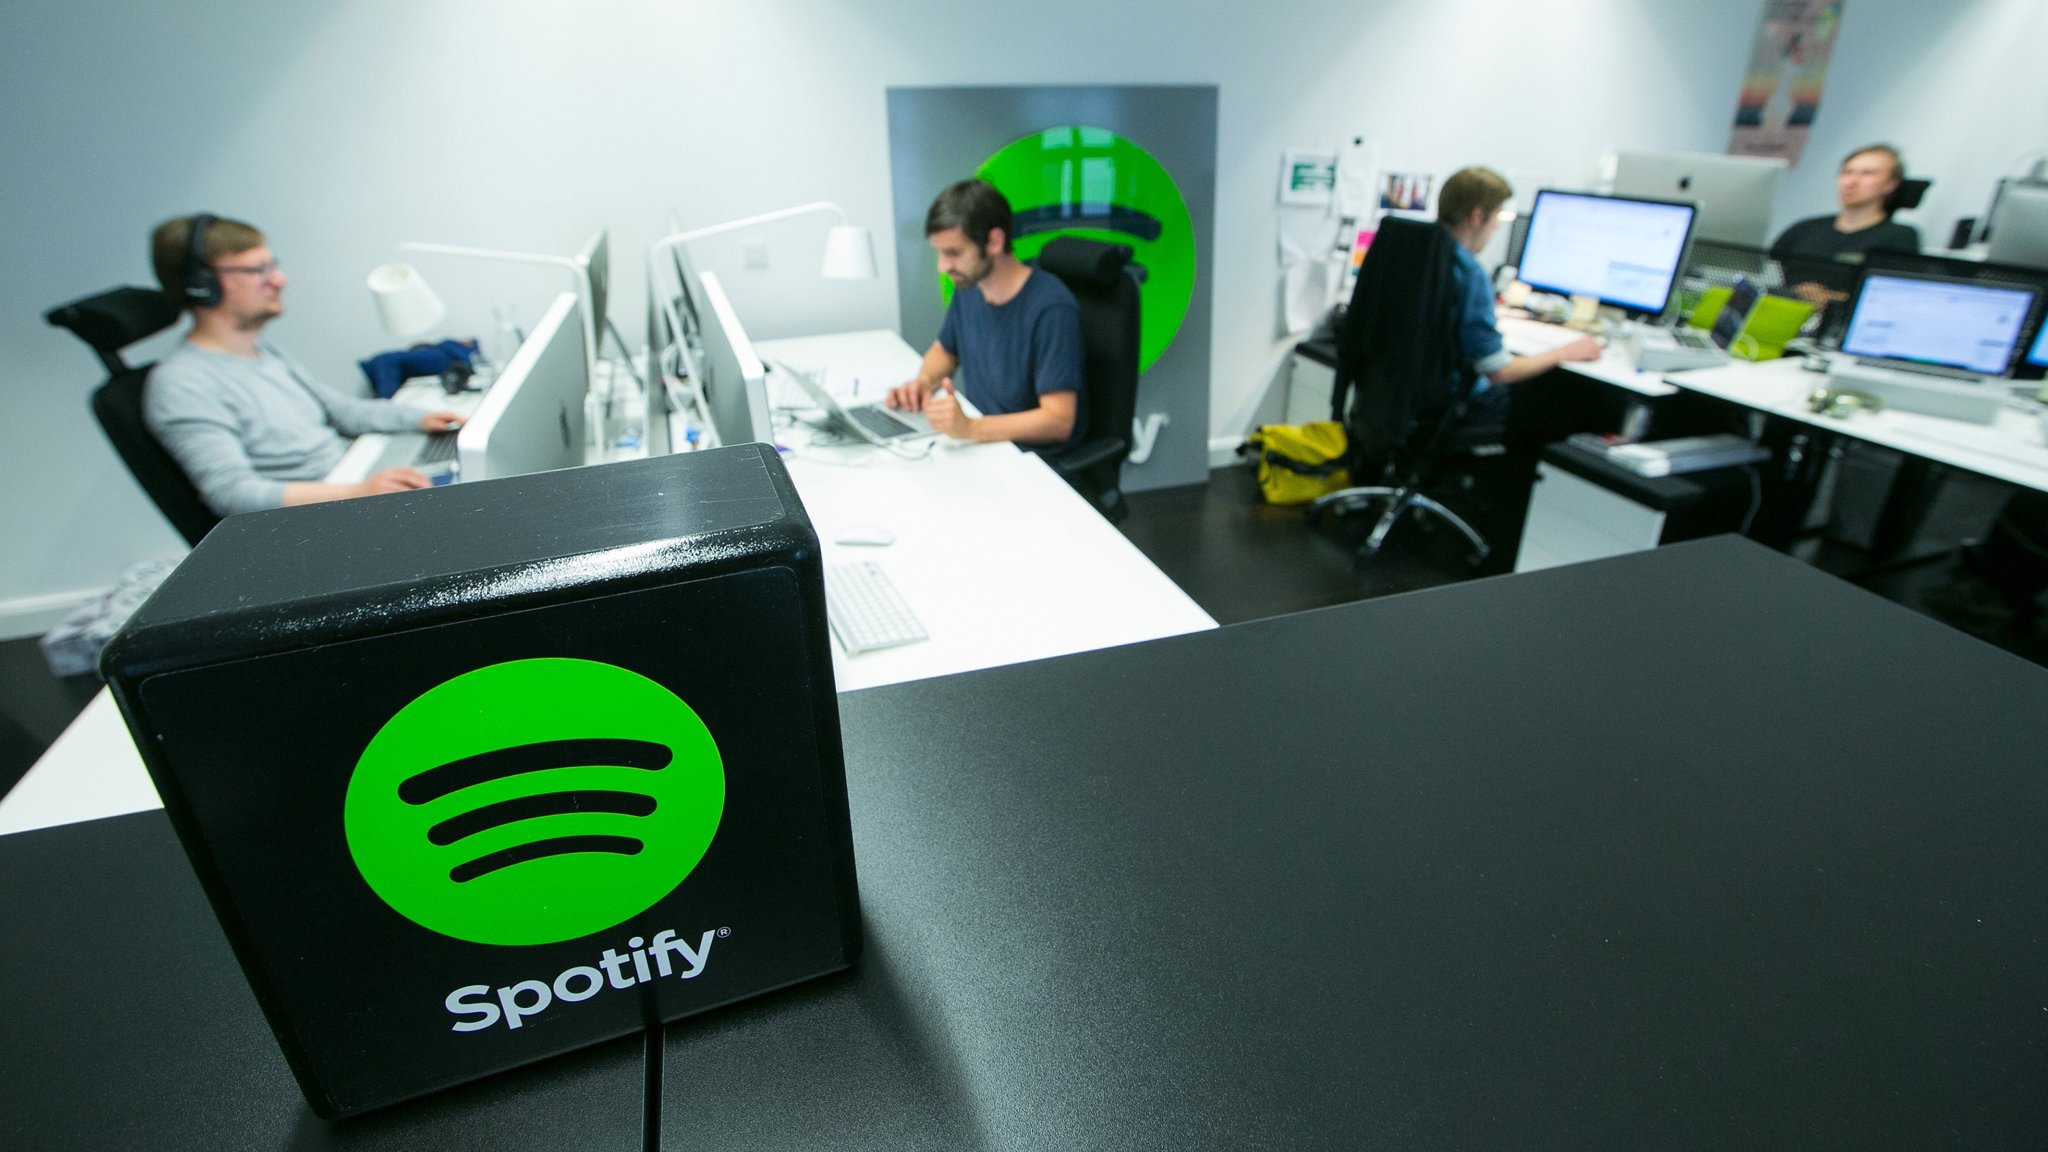 spotify, music, acquisition, soundcloud, apple music, streaming music